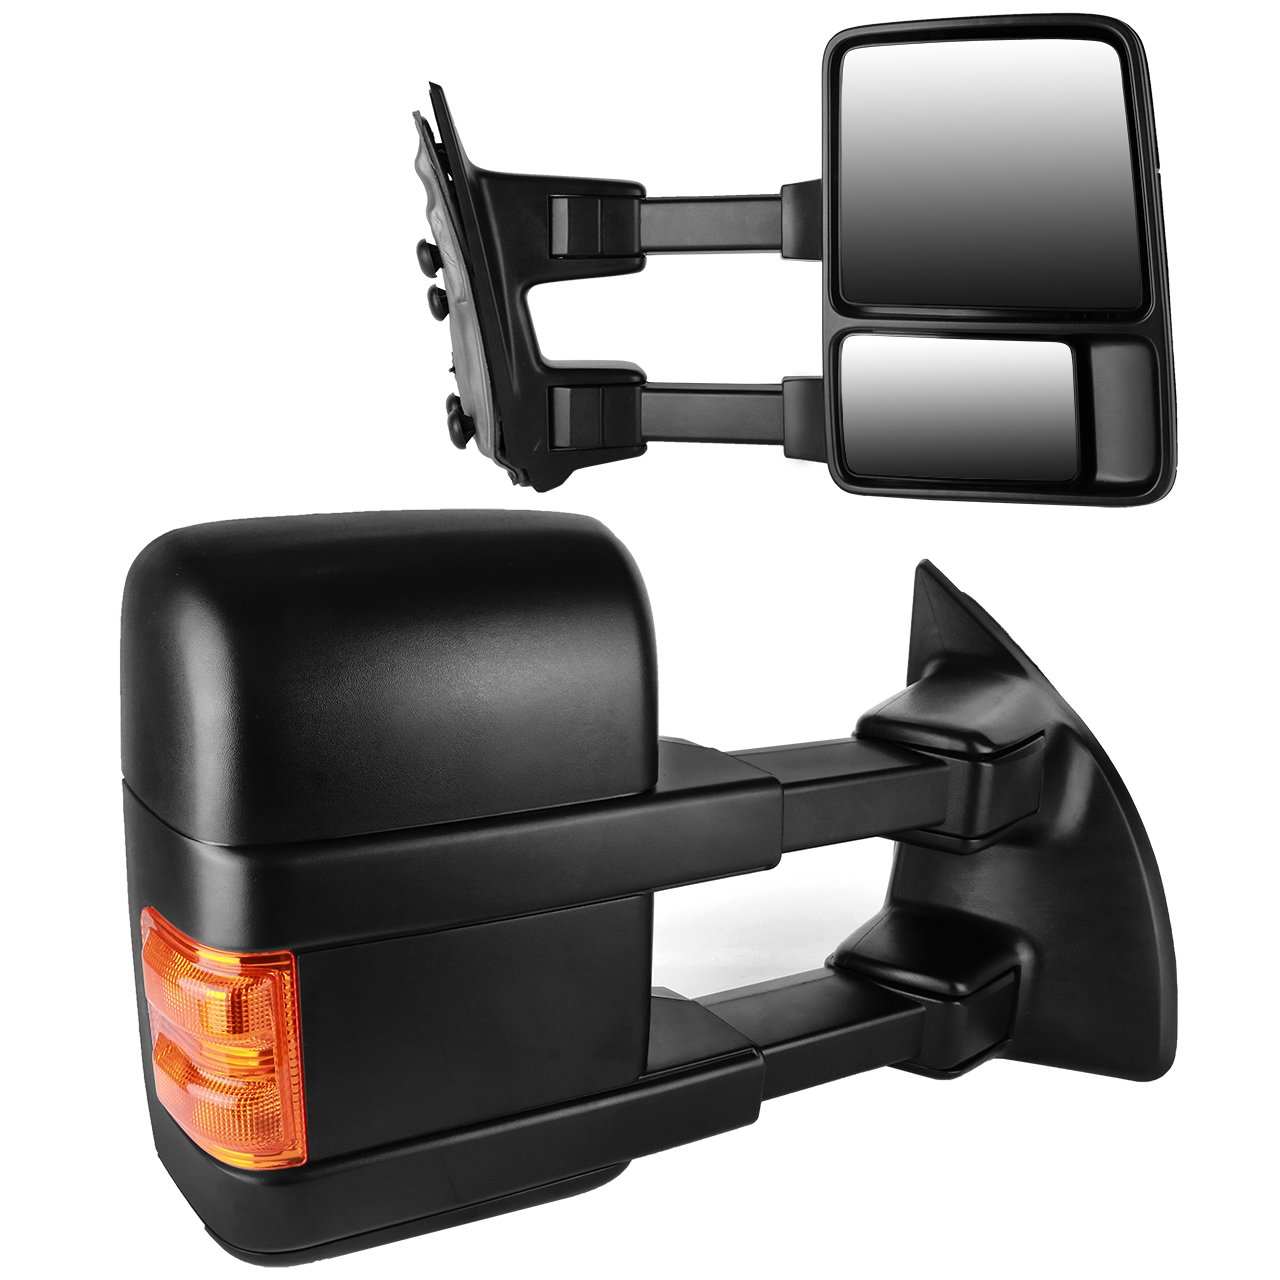 DEDC Ford F250 Tow Mirrors Fit for 99-15 Ford F250 F350 F450 Super Duty Towing Mirrors Manual Telescopic with Signal Lights Indicator